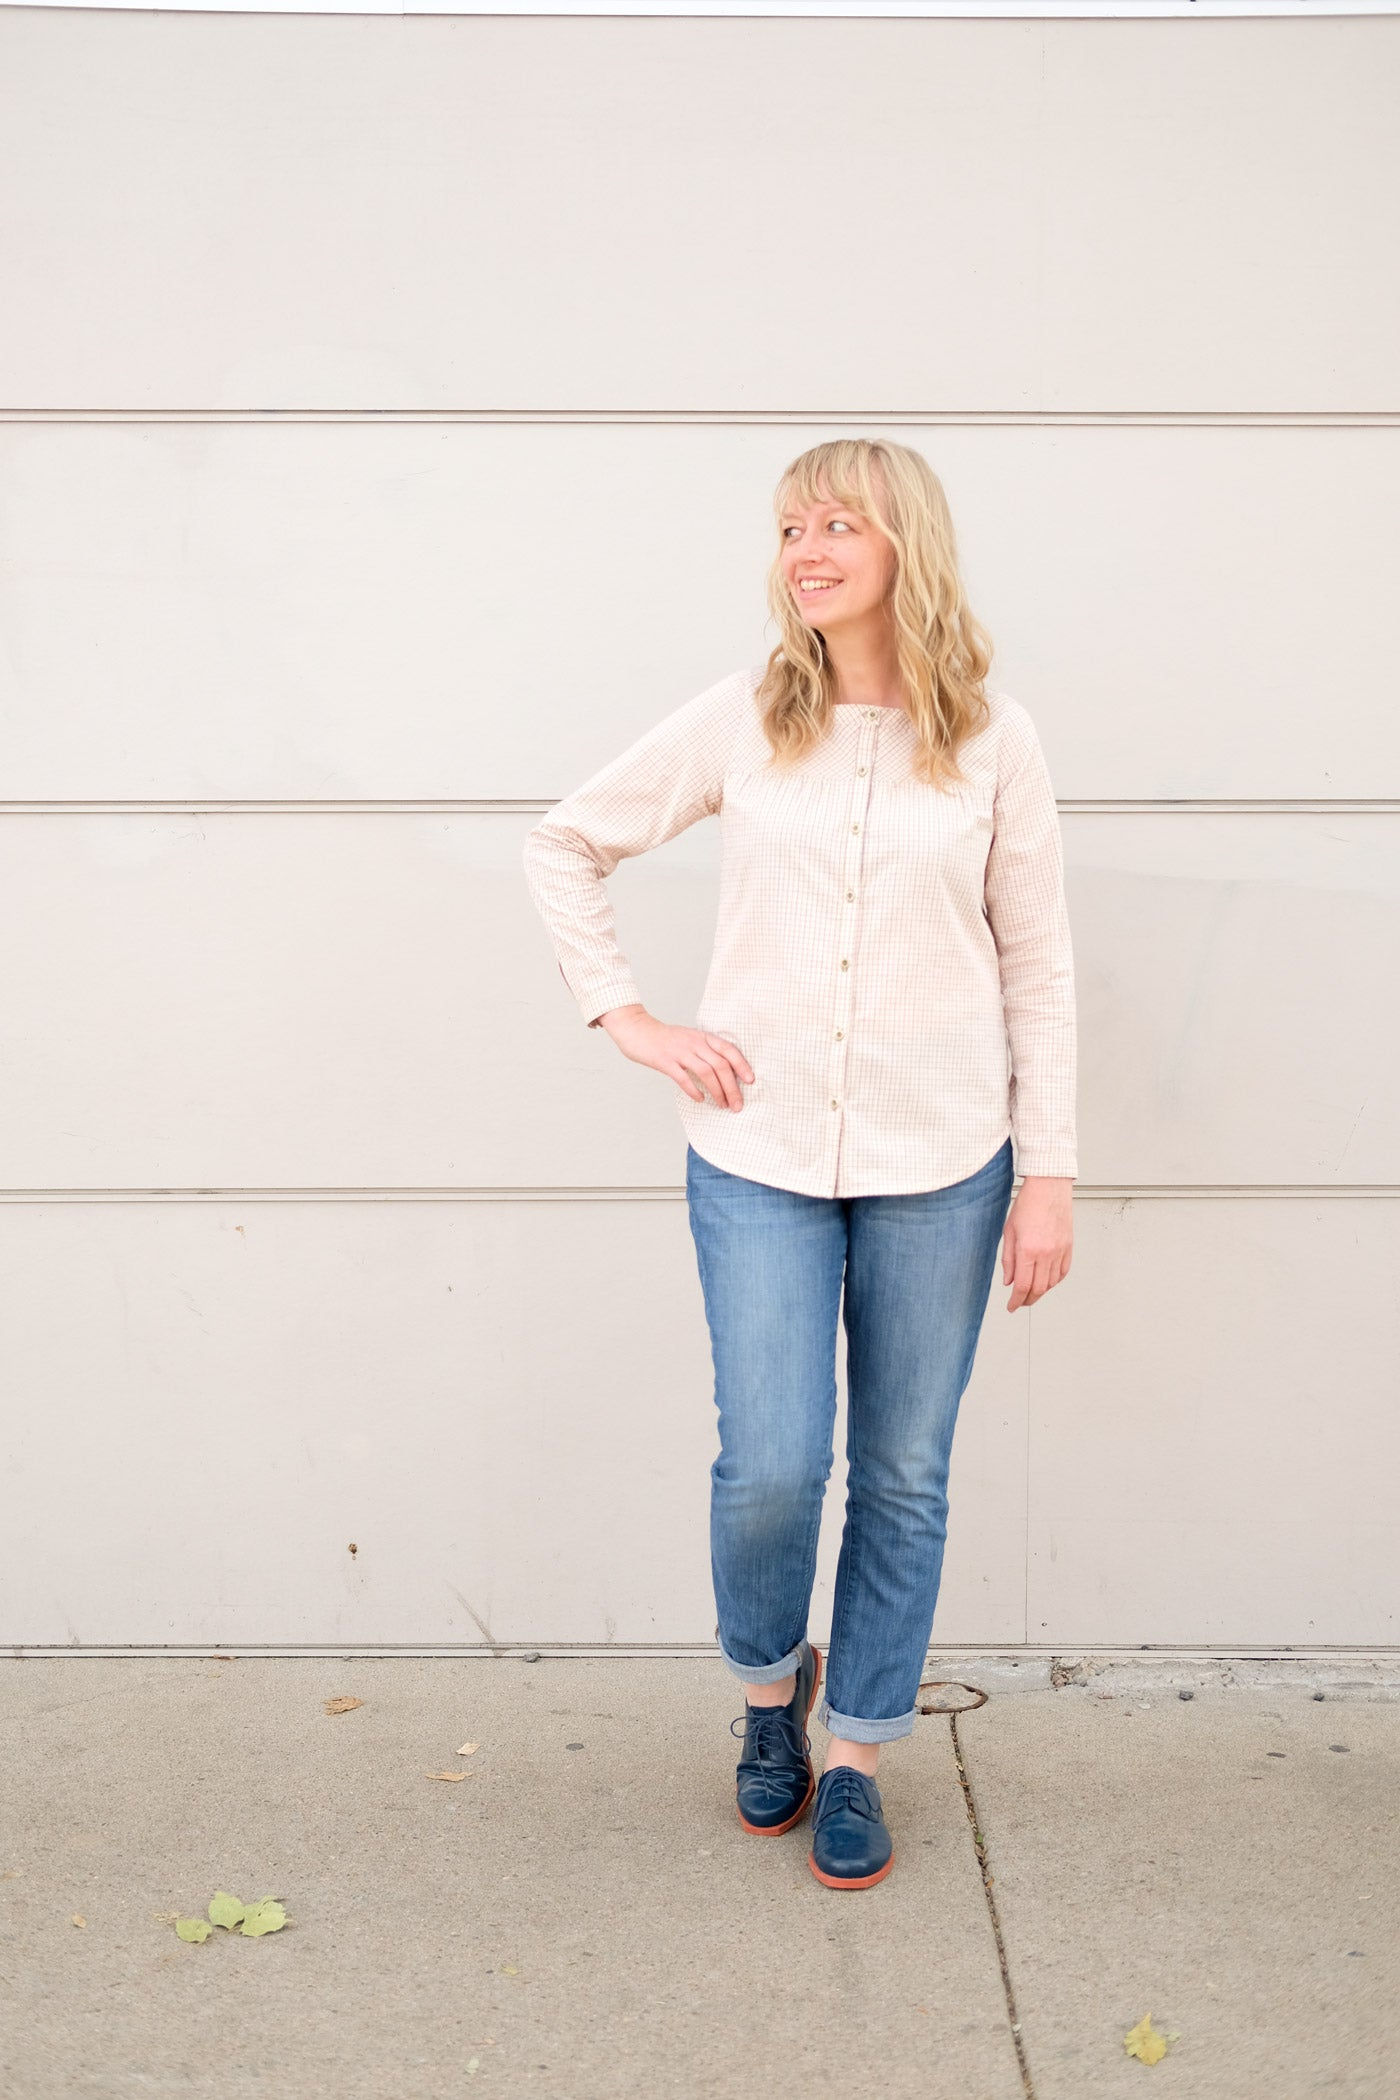 Woman standing in front of an off white wall in jeans and a very pale peach button up shirt. She smiles and looks off to the left with one hand on her hip.